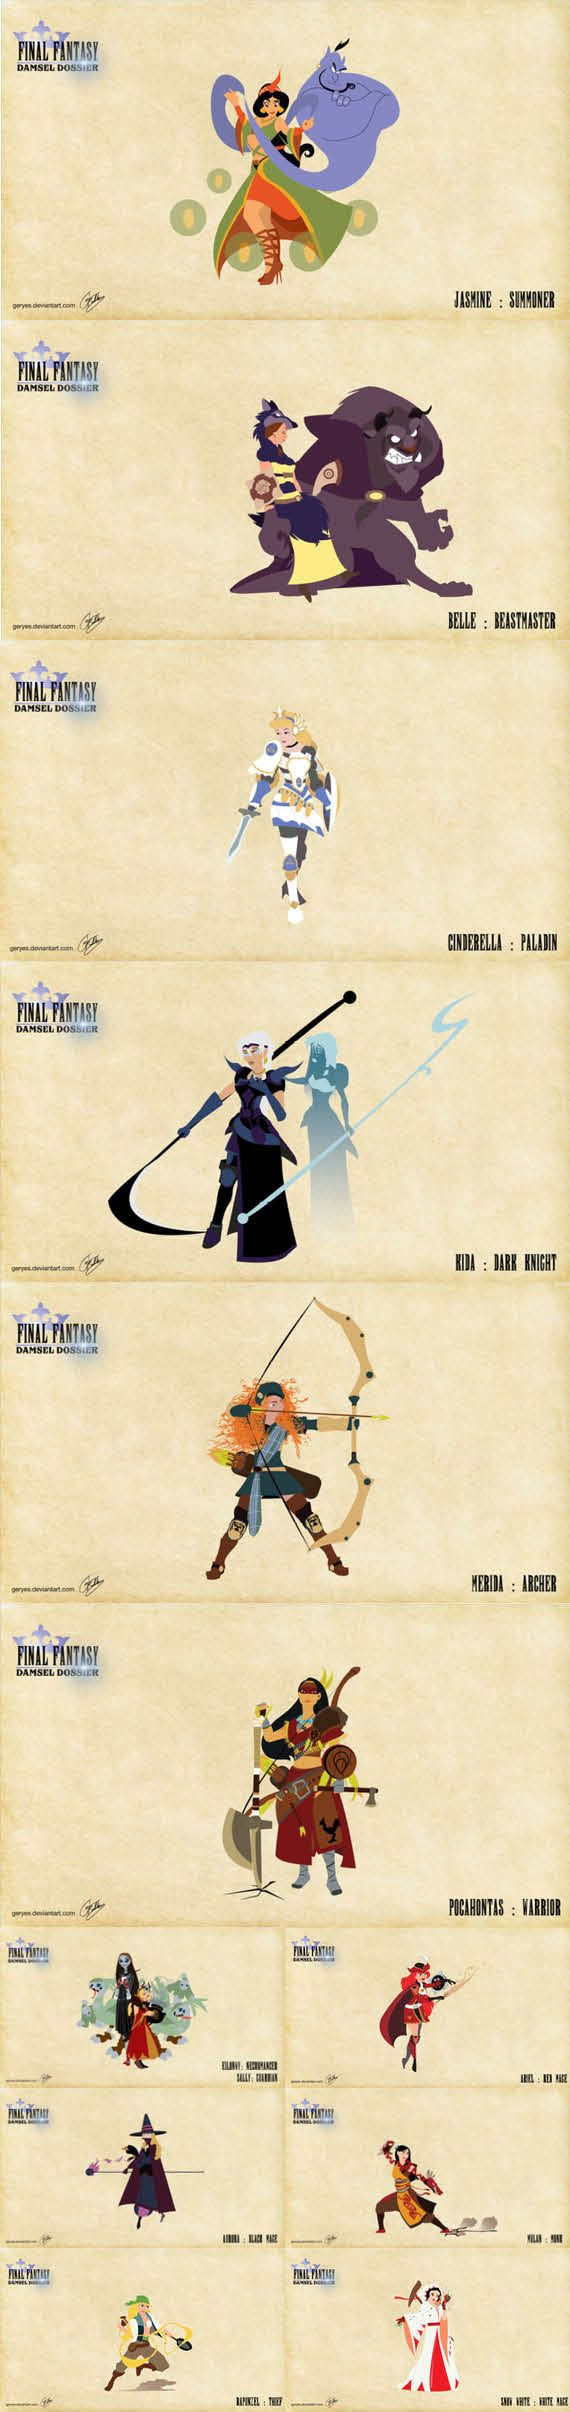 #Disney characters and made up to look like #FinalFantasy Job Classes! http://www.levelgamingground.com/disney-and-final-fantasy-news.html